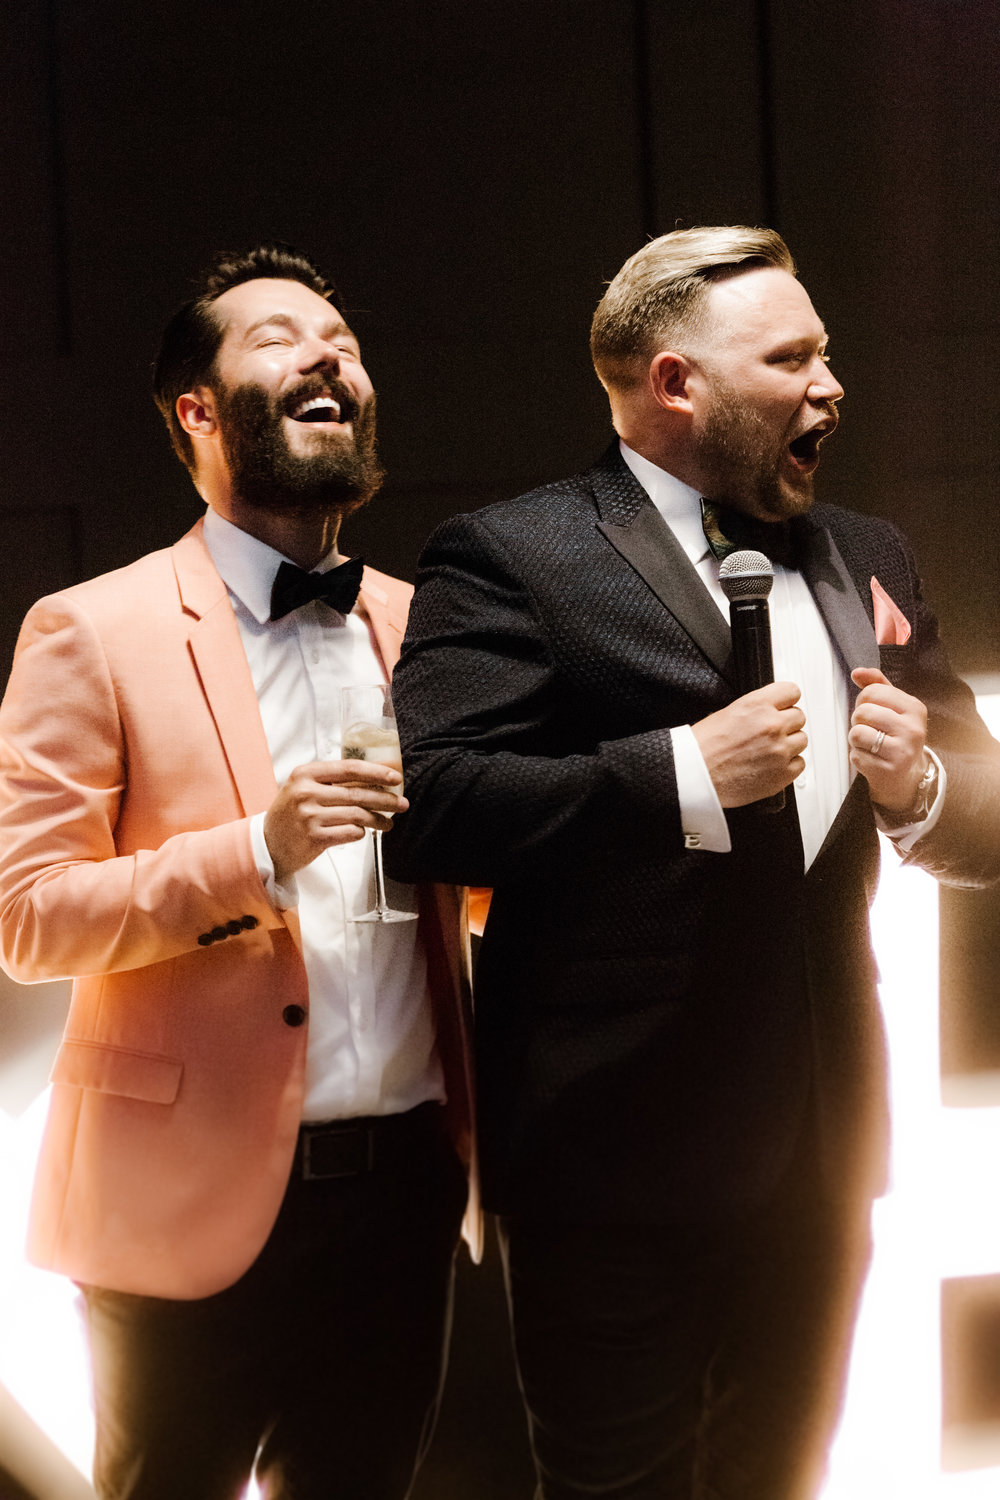 Adam+Eddie - Melbourne Same-Sex Engagement - Alto Event Space - Photographer: Dave Lepage